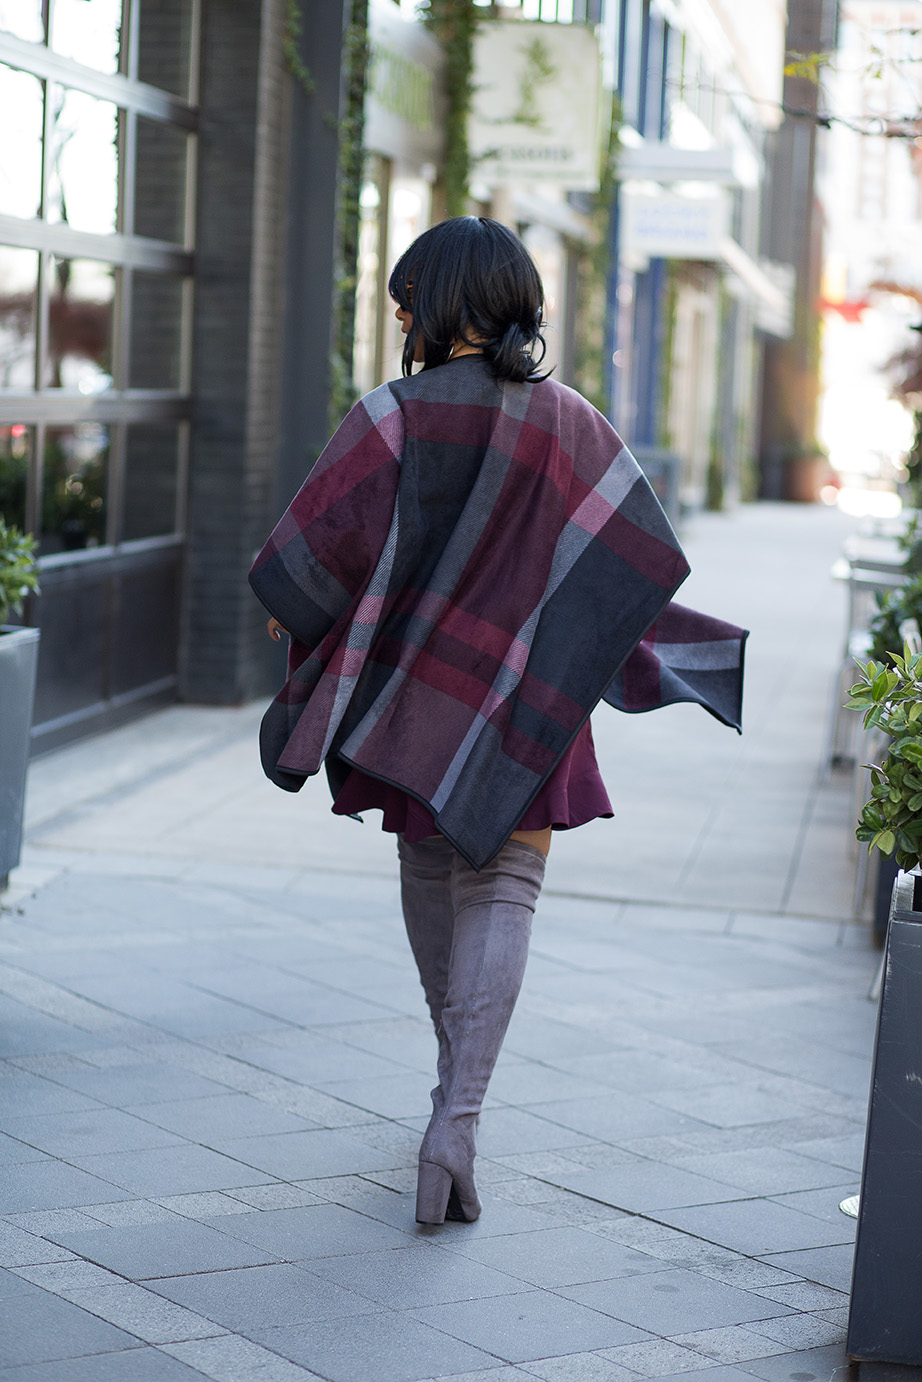 A case for capes: Costco wool print cape, Gap Long Sleeve Crew Tee, LOFT skirt, Grey Over the Knee Boots, House of Harlow Chelsea sunglasses, outfit of the day